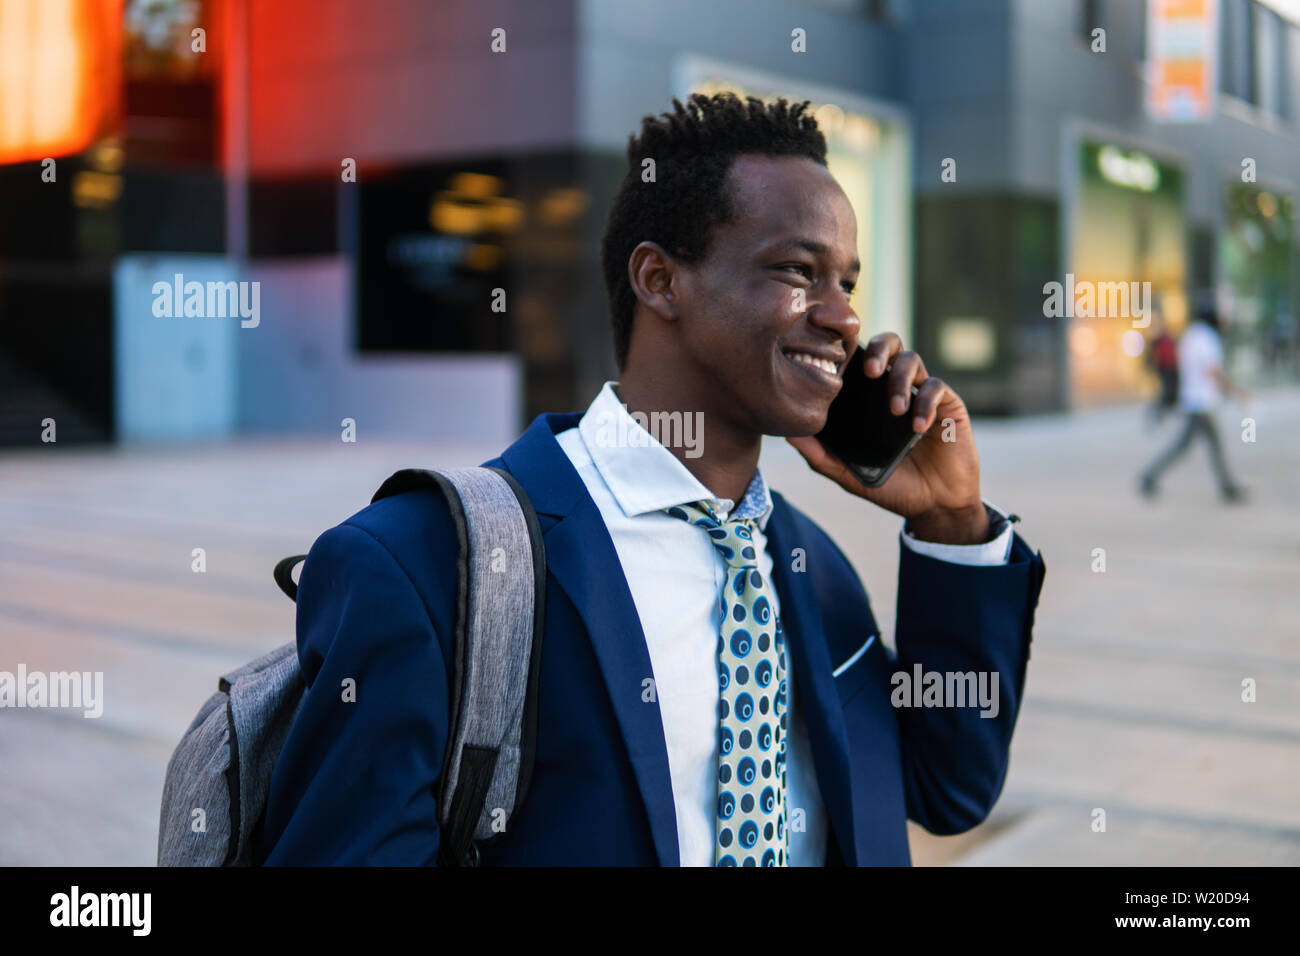 African American businessman holding mobile phone wearing blue suit Stock Photo